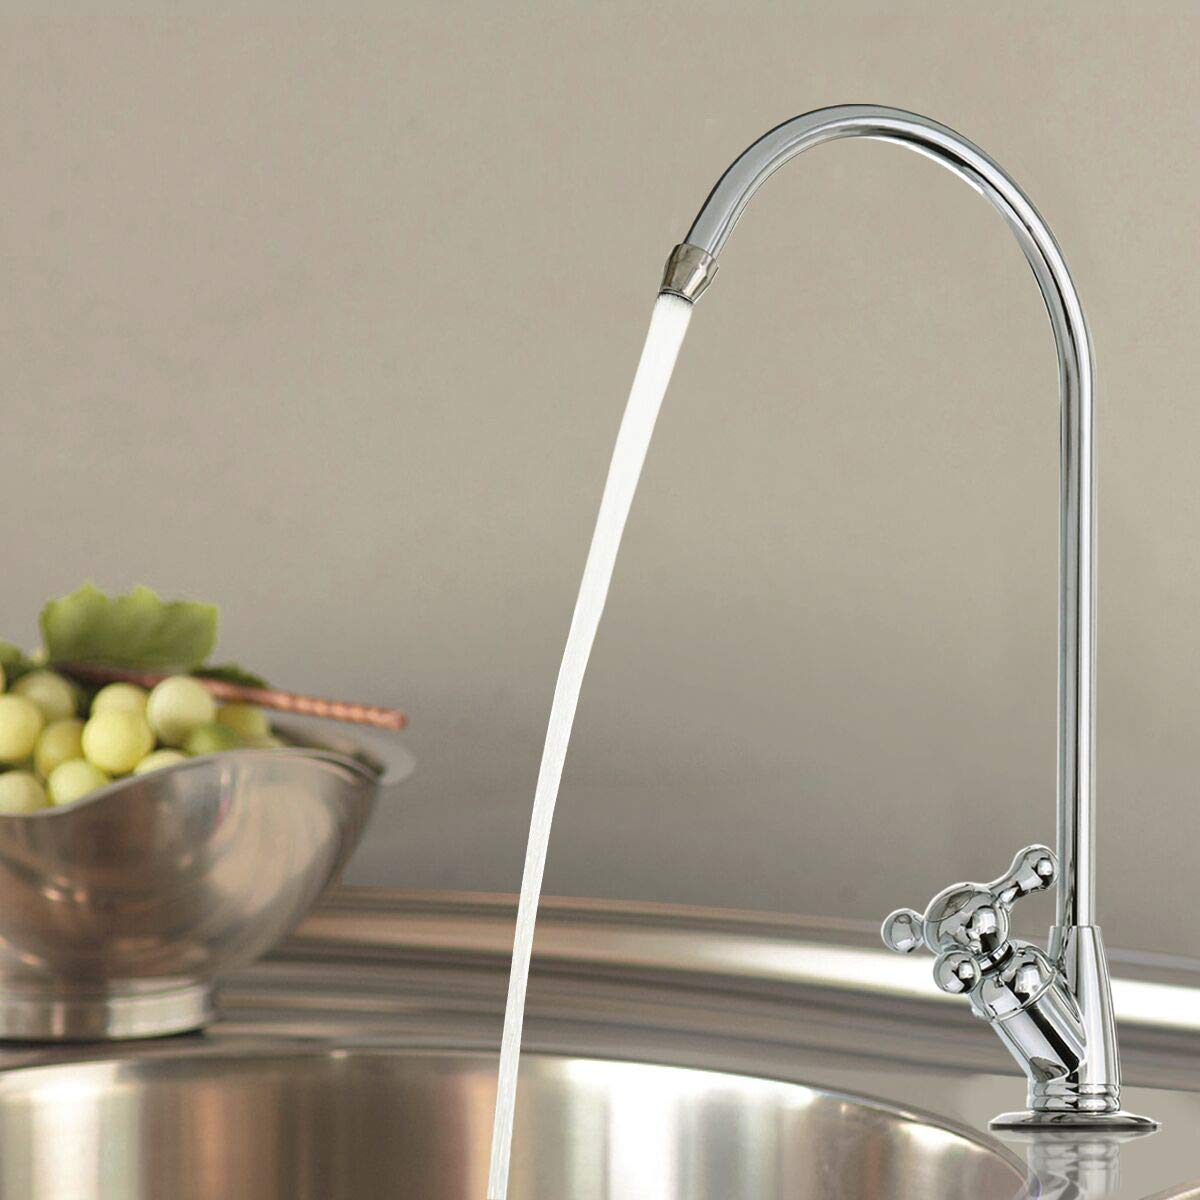 Aissimio RO Filter Drinking Water Faucet,Chrome RO Reverse Osmosis Kitchen Sink Drinking Water Filter Faucet Tap (Type B)